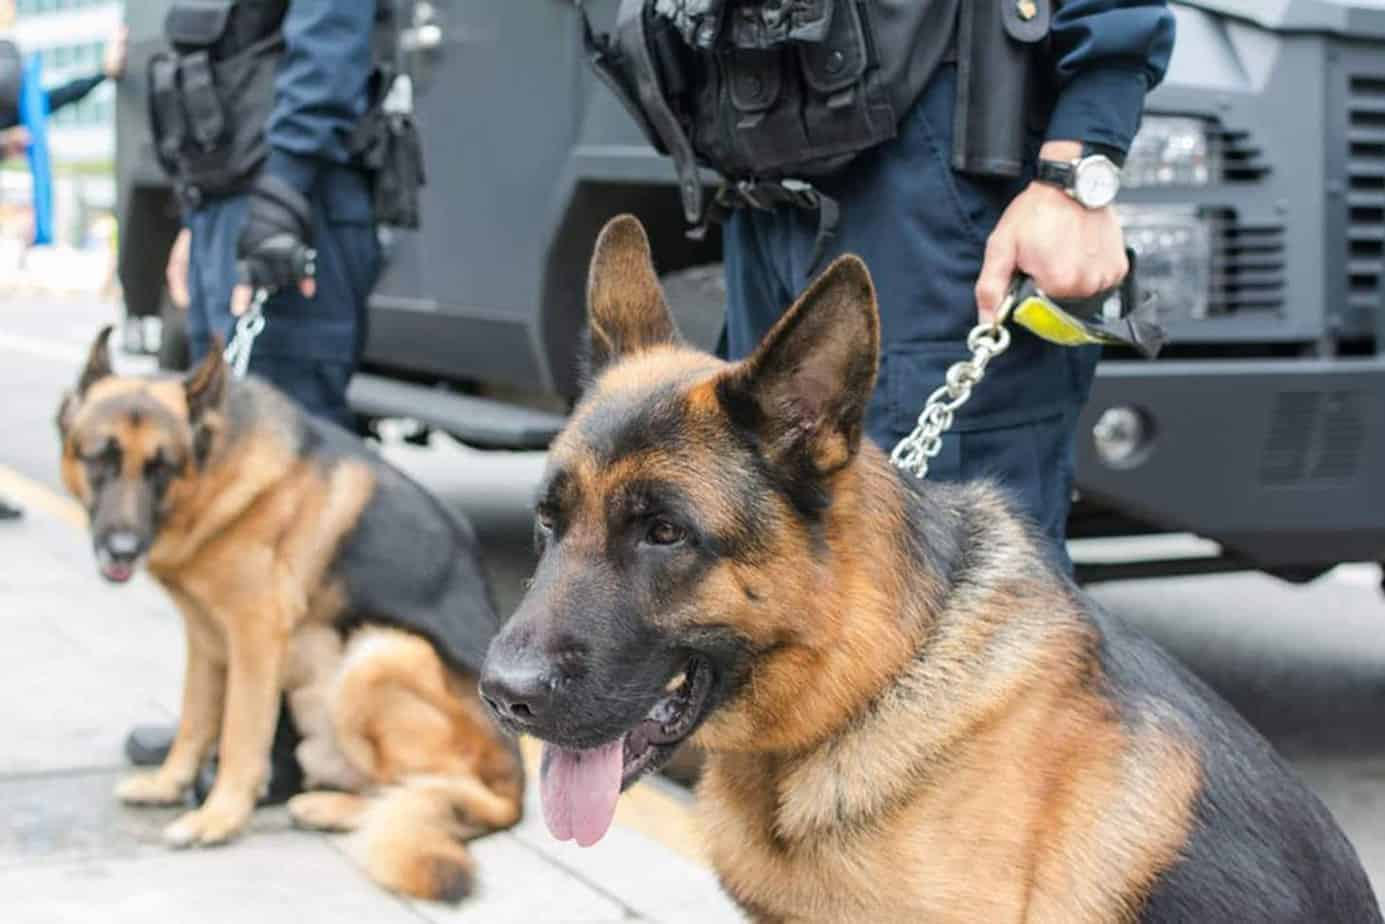 CAN SNIFFER DOGS FIND YOUR CANNABIS VAPORIZER 1 1